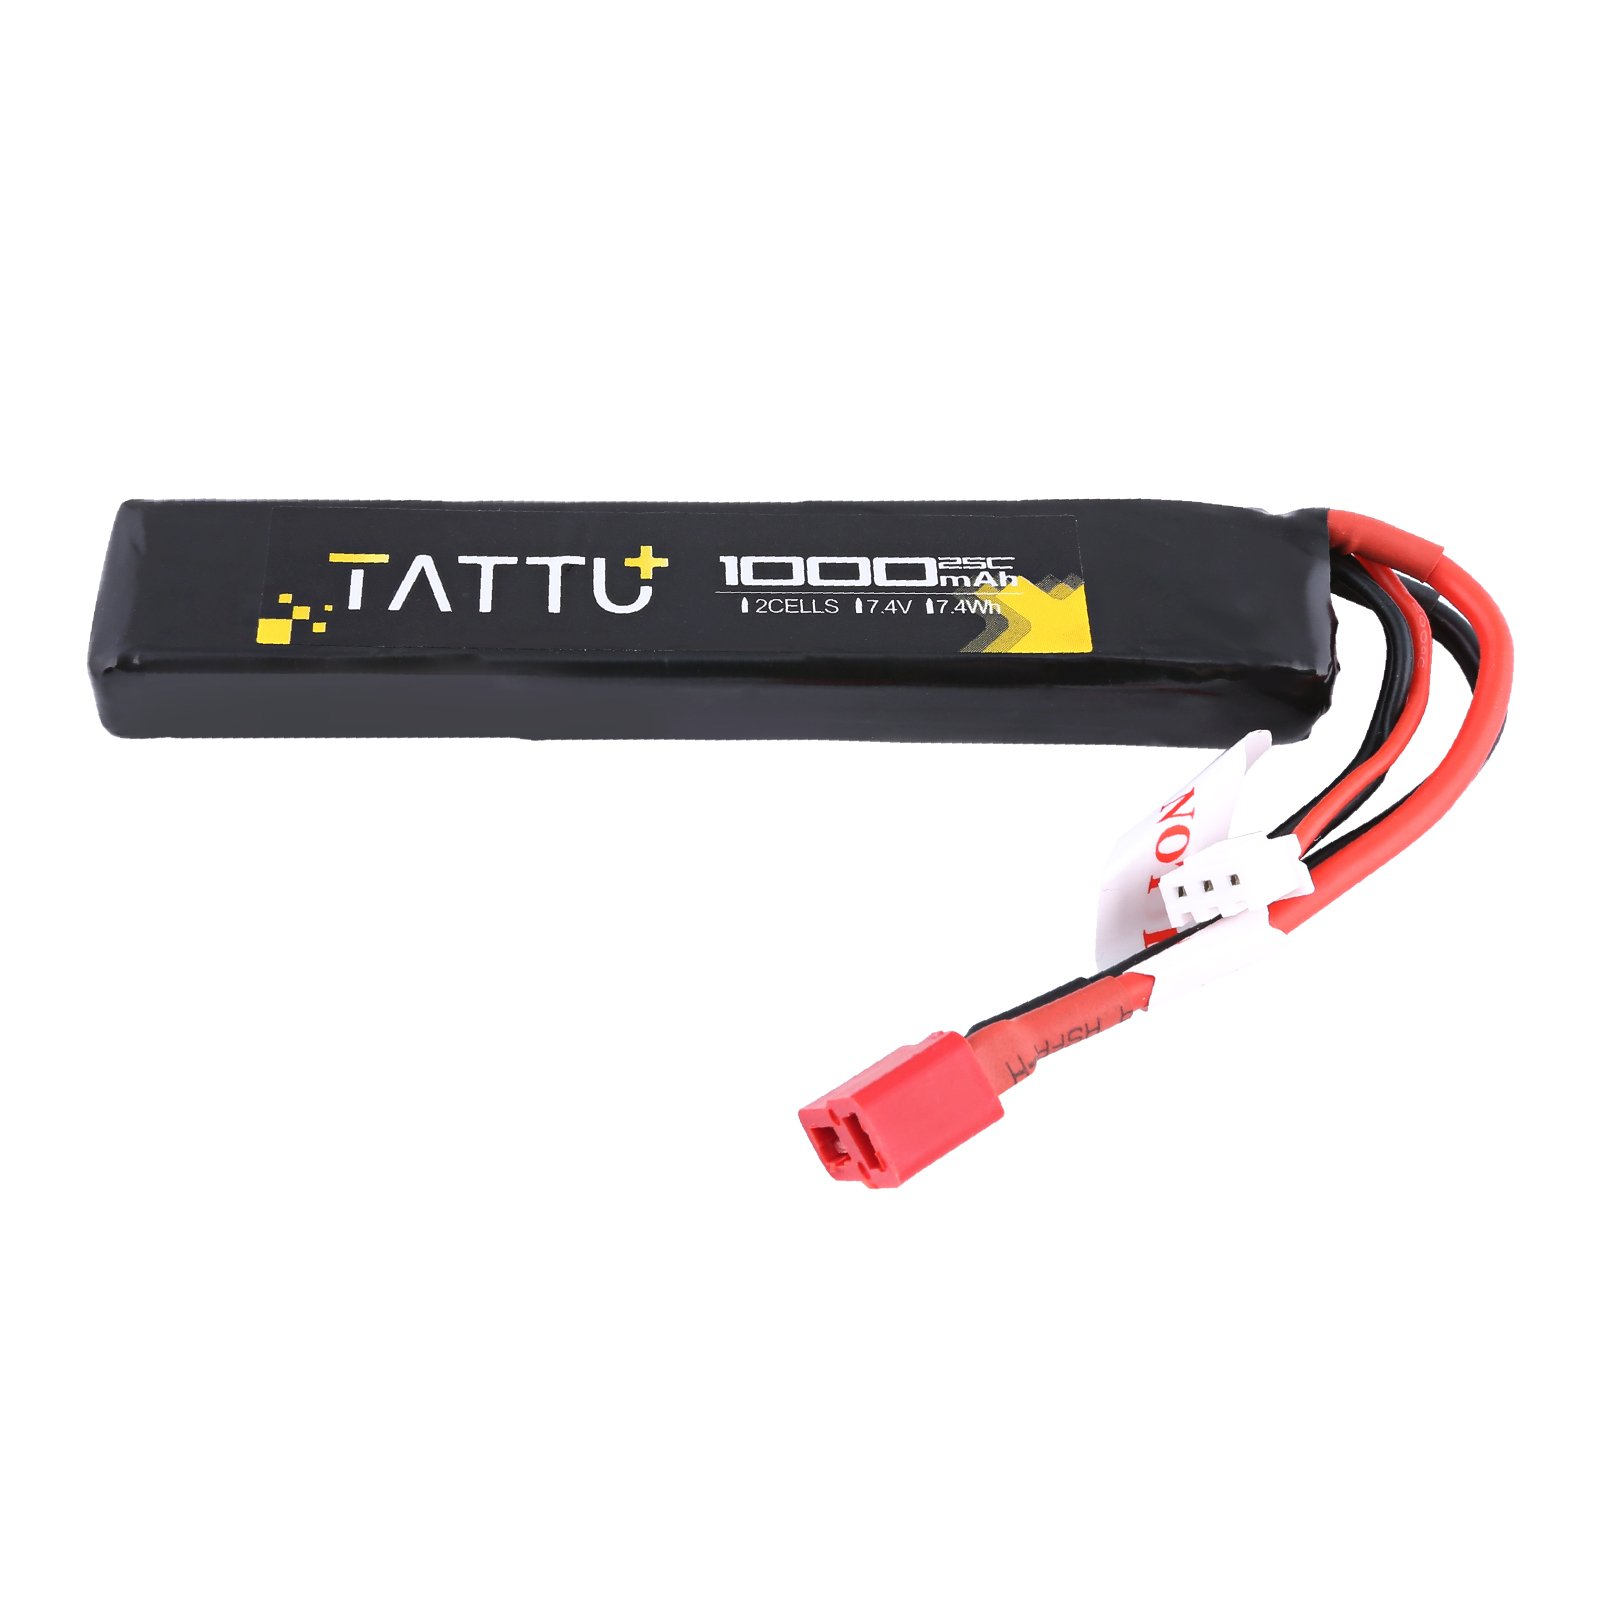 TATTU 7.4V Airsoft LiPO Battery with Deans Connector, 1000mAh 25C 2S Battery Pack For Airsoft Guns